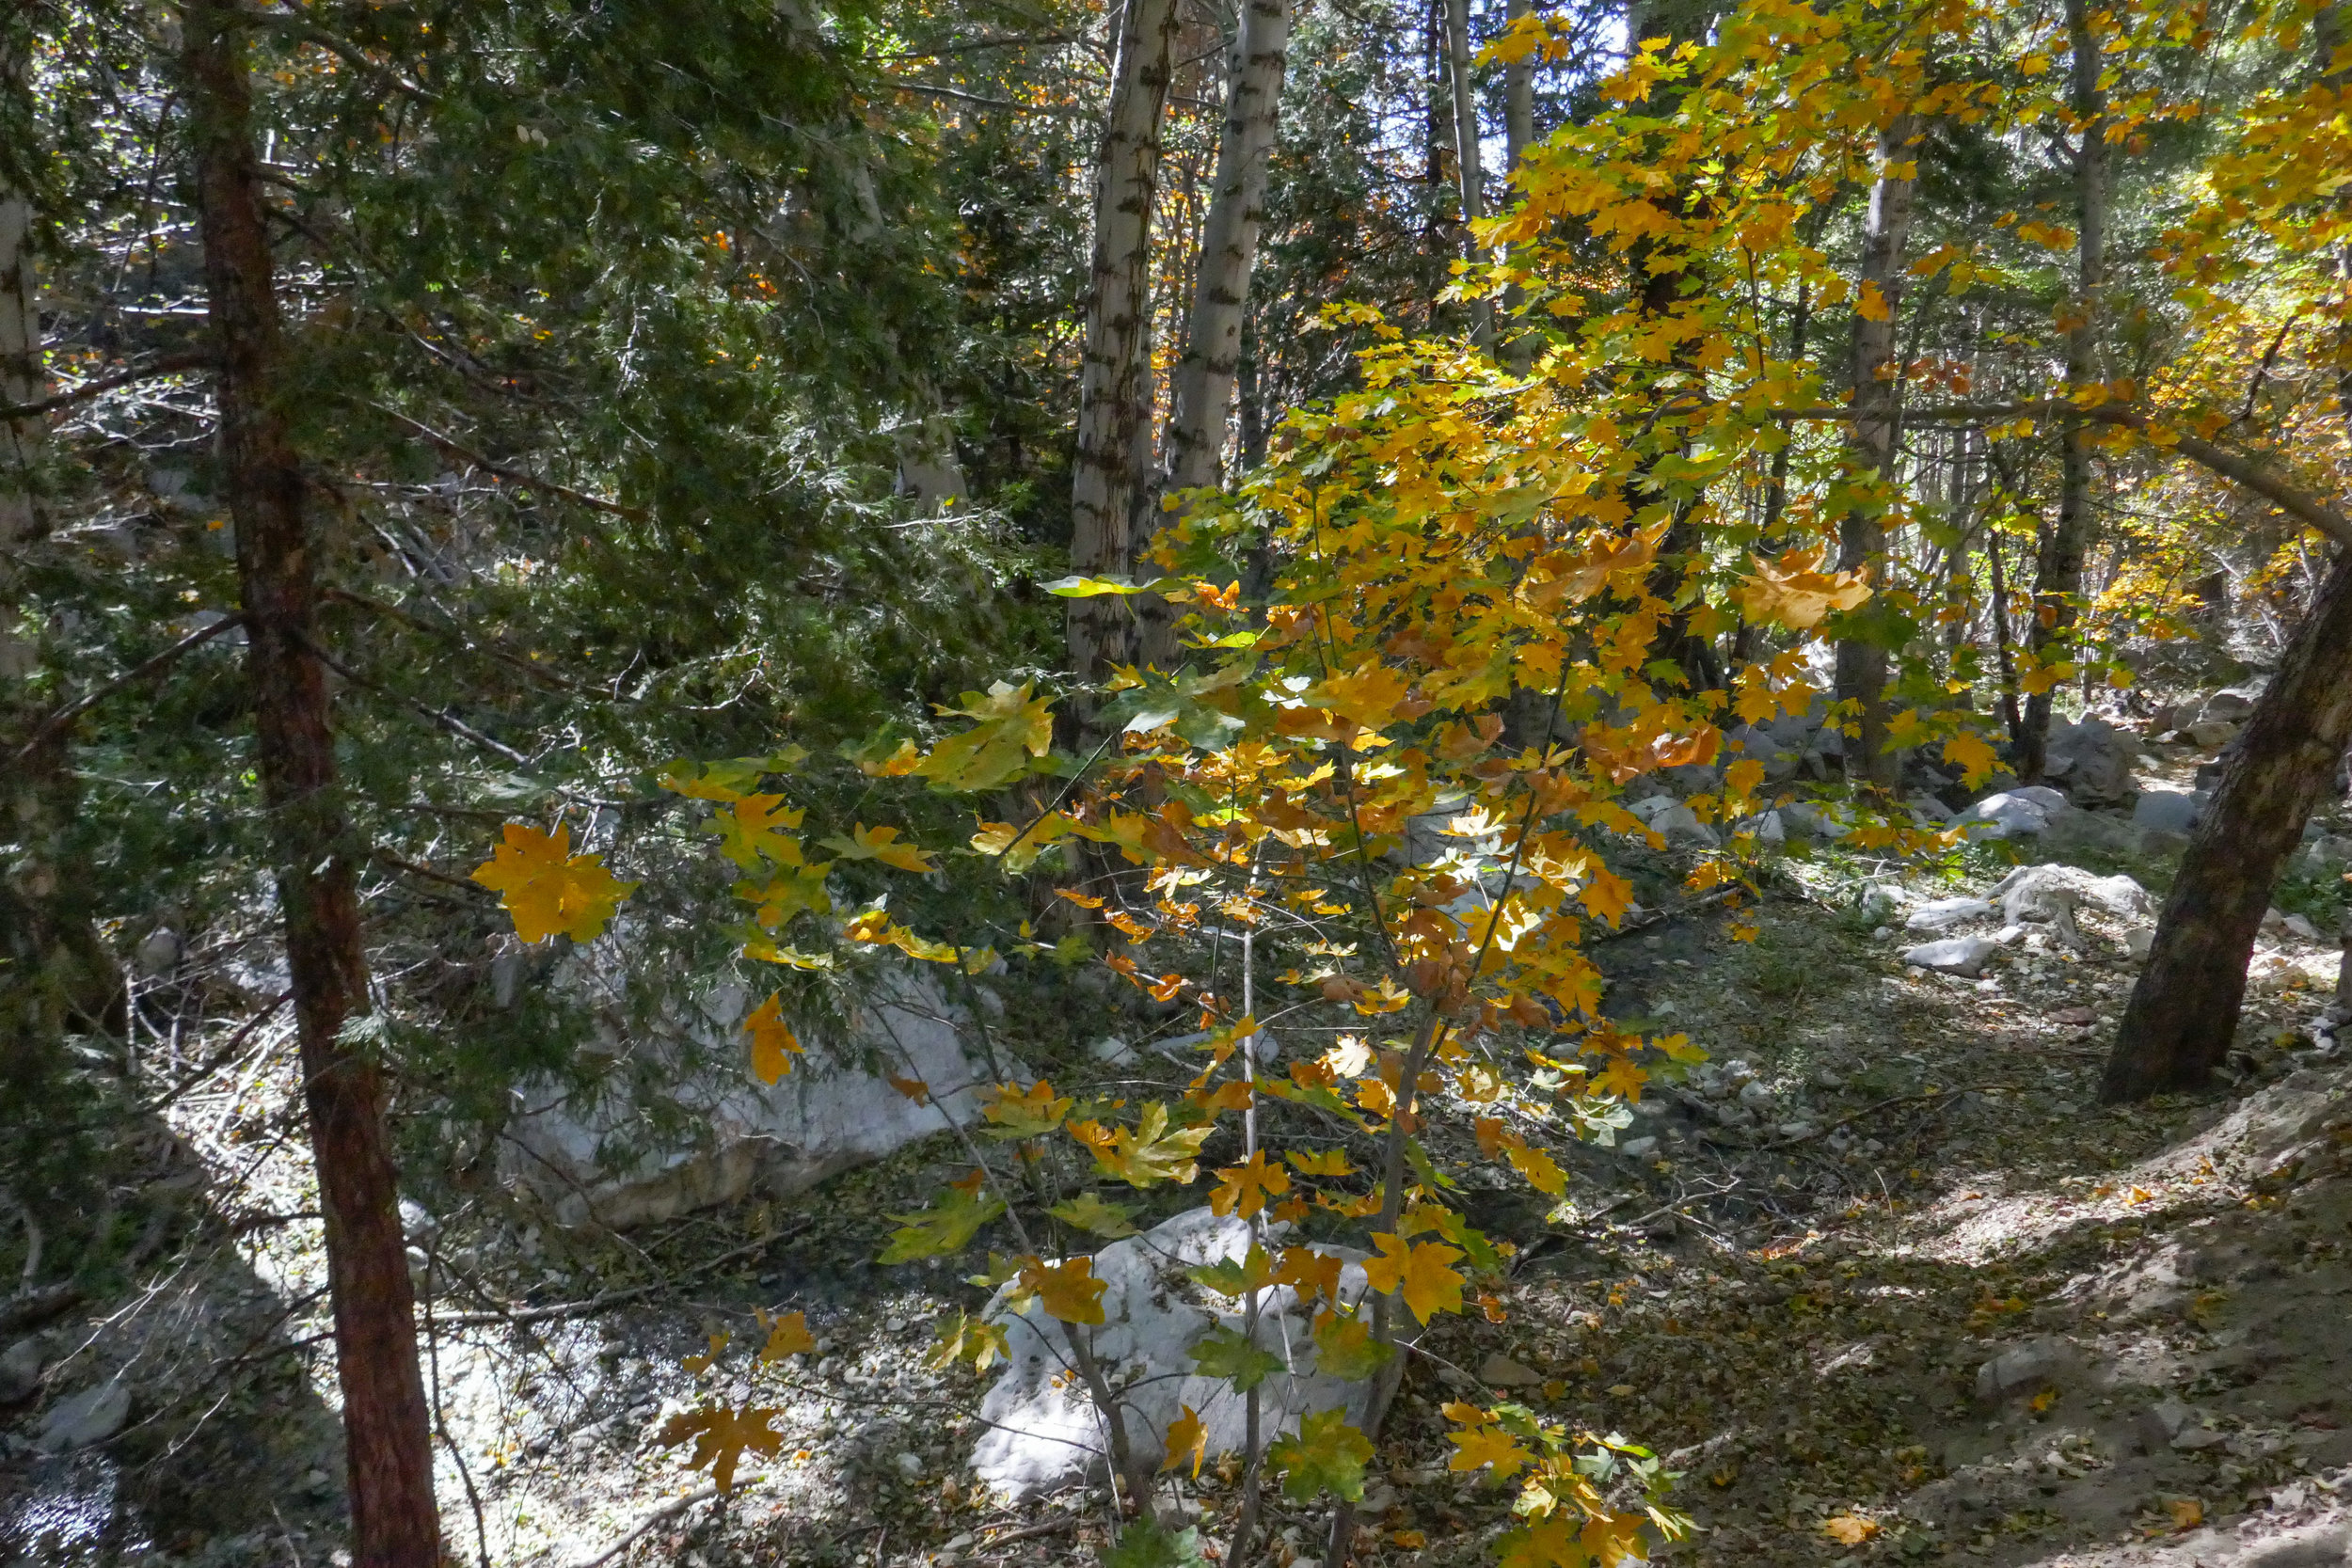 Now back in the canyon, we enjoyed the sound of the creek along with the golden leaves glistening in the afternoon sunshine.